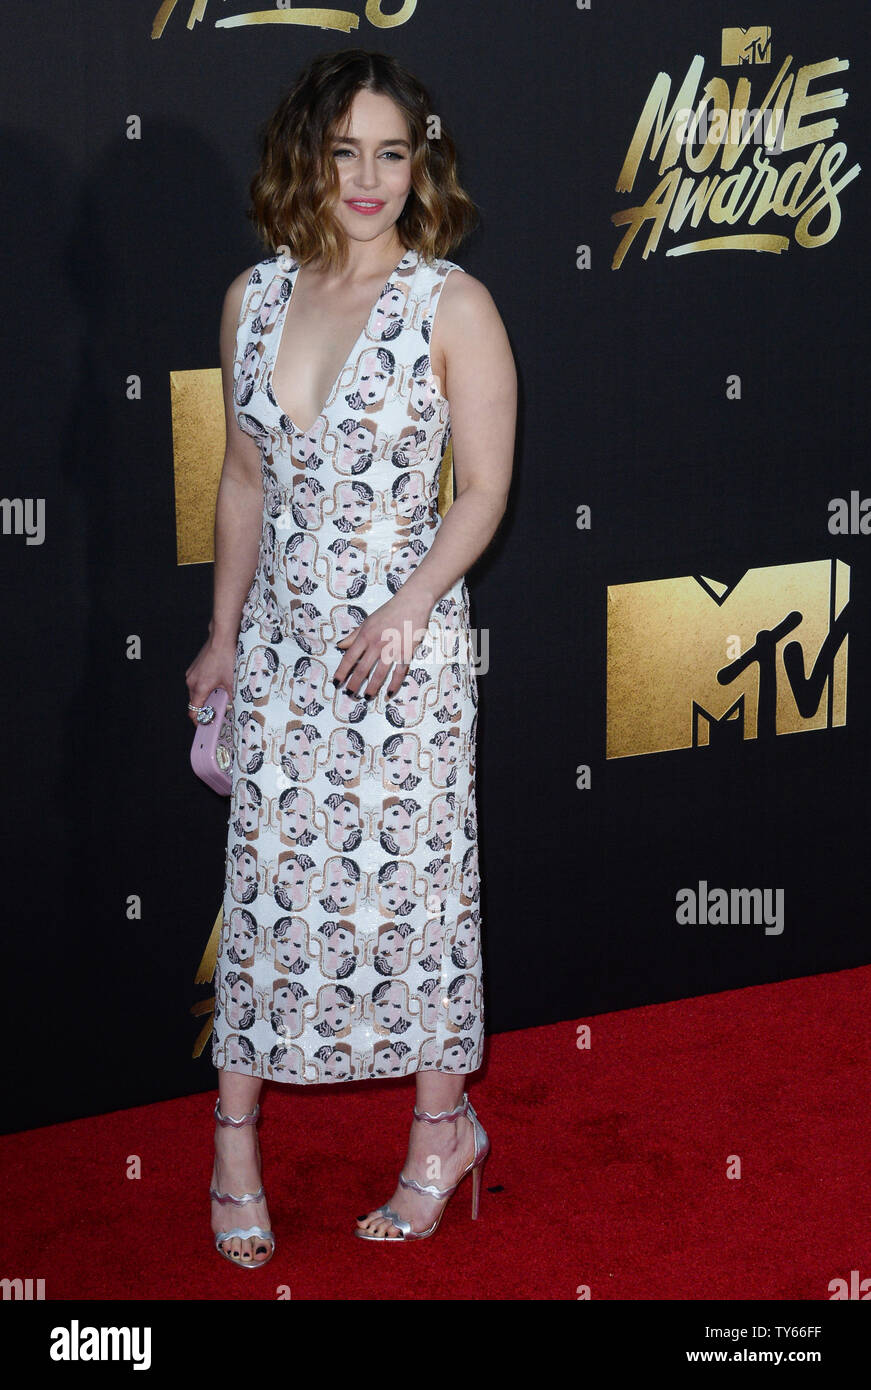 Actress Emilia Clarke attends the MTV Movie Awards at Warner Bros. Studios in Burbank, California on April 9, 2016. The MTV Movie Awards airs Sunday, April 10 at 8pm ET/PT.  Photo by Jim Ruymen/UPI - Stock Image